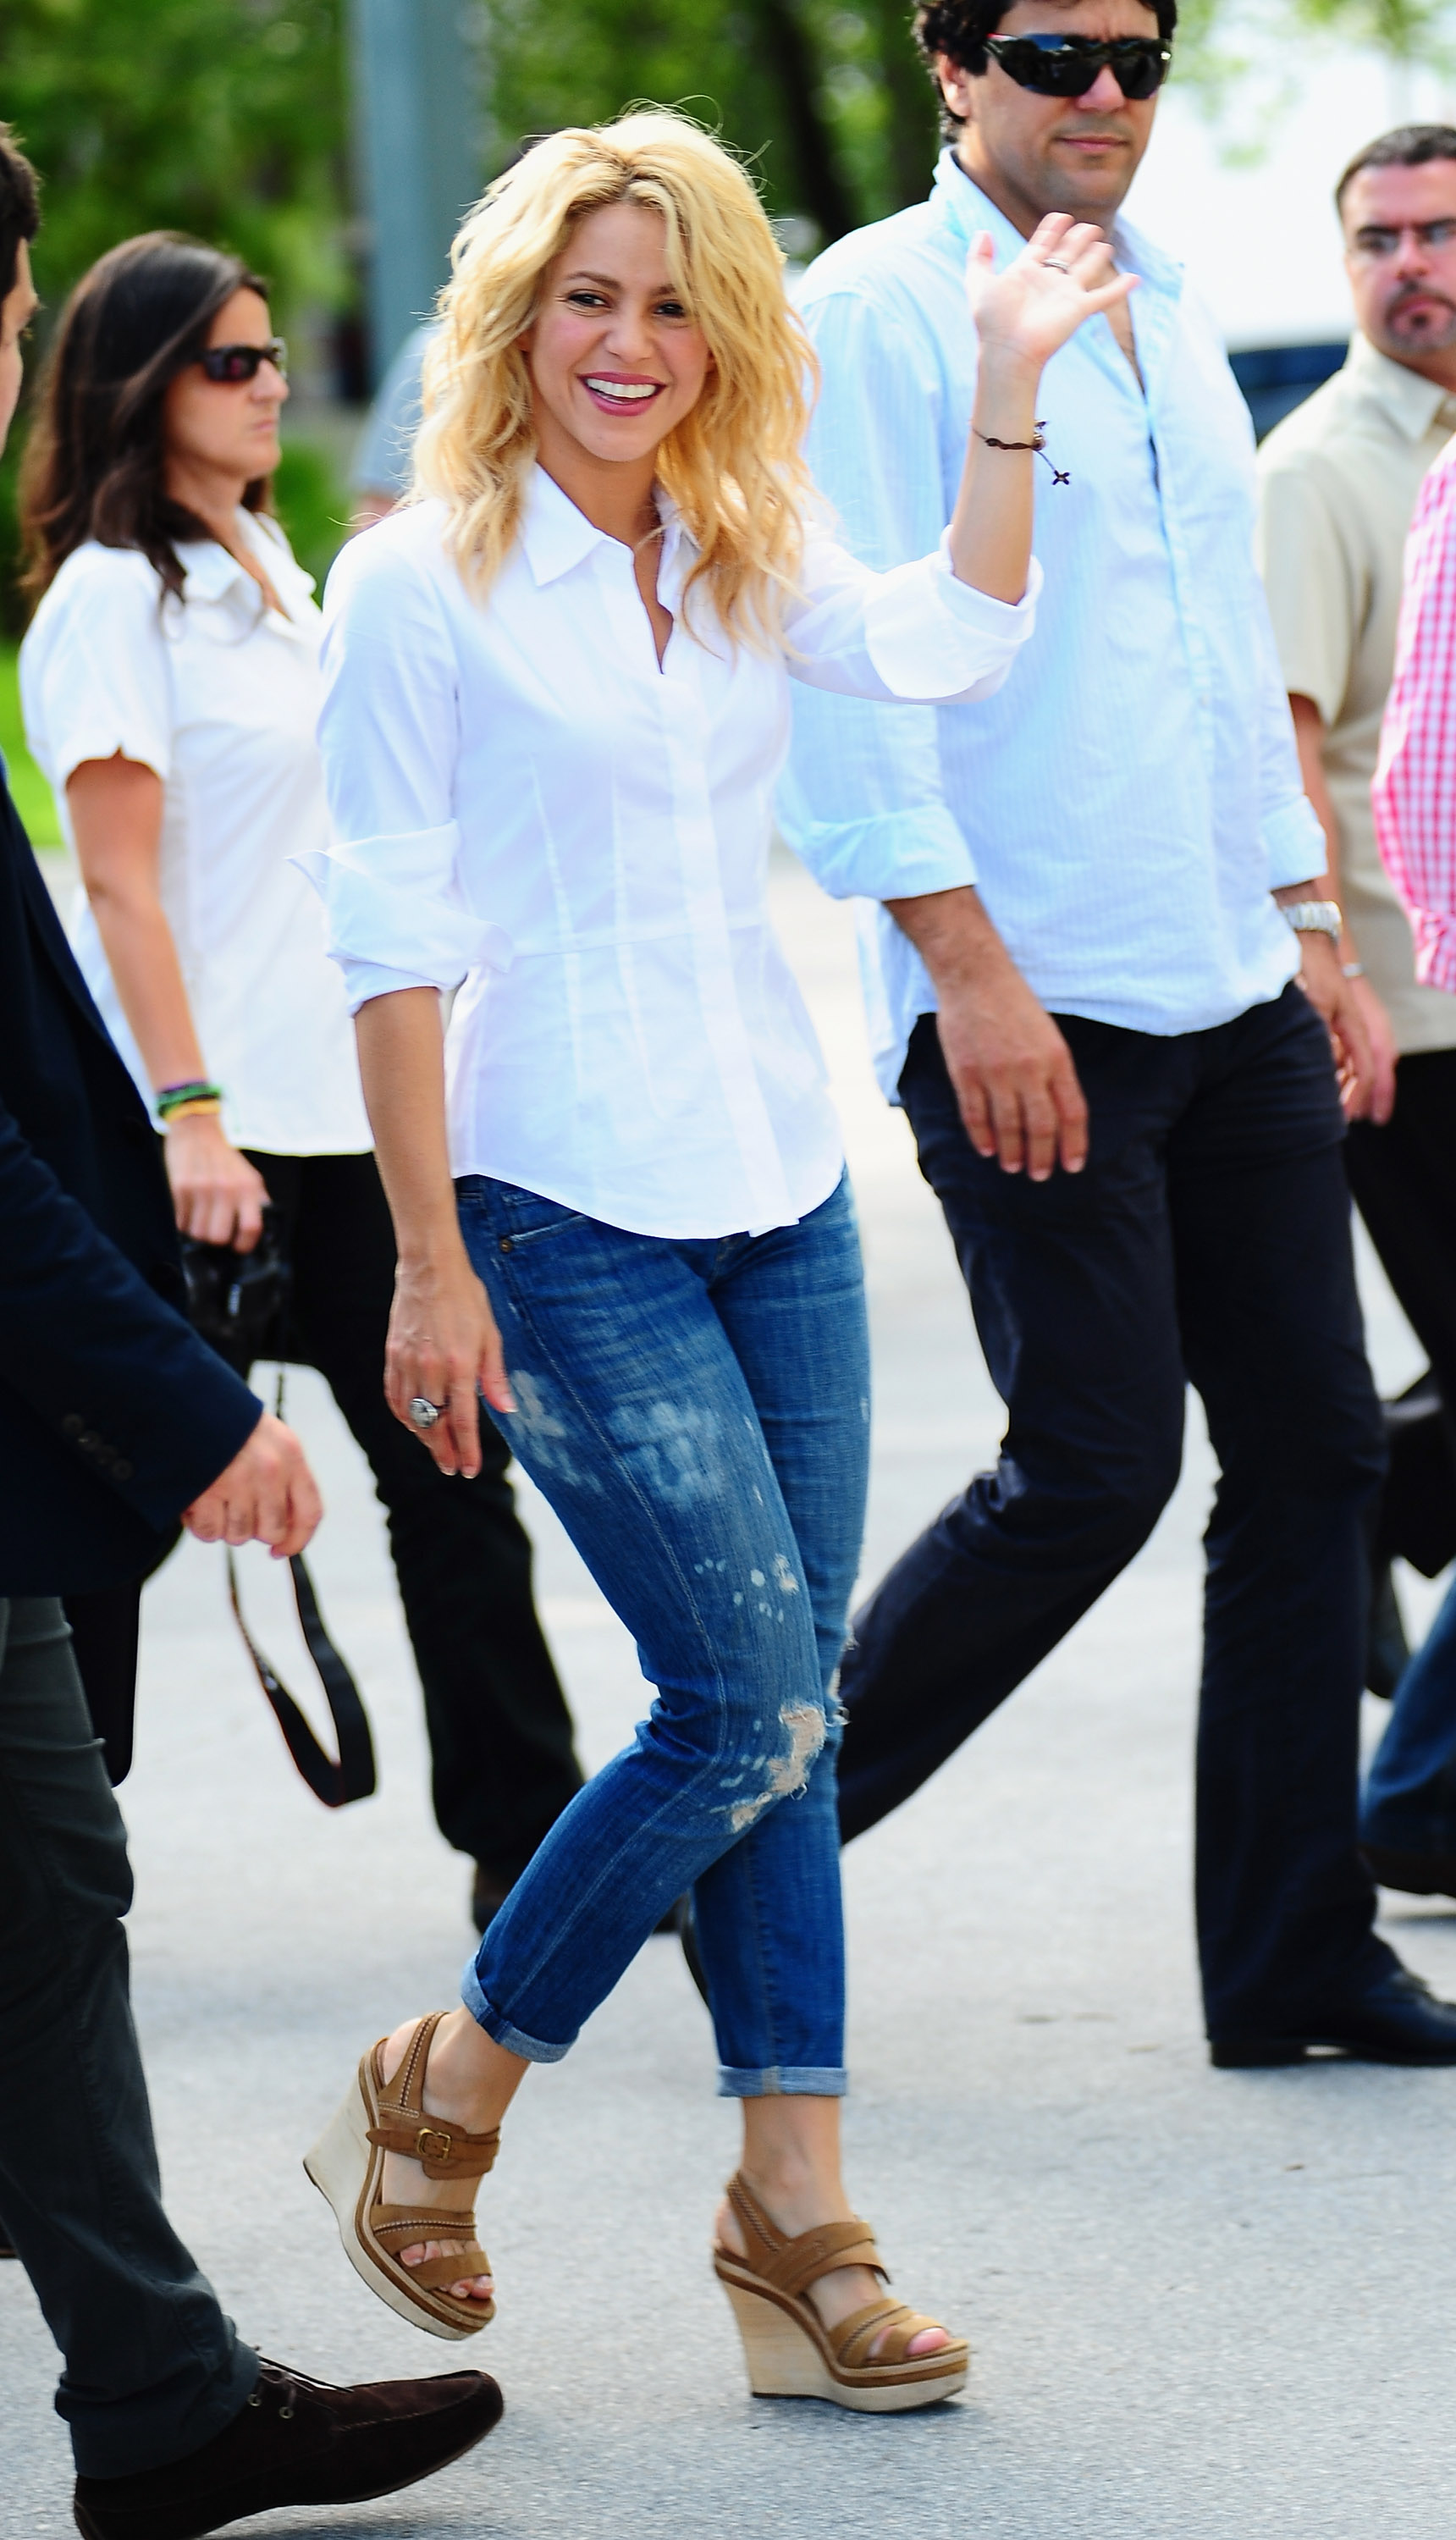 Shakira S Foundation Pies Descalzos Opening 6th School